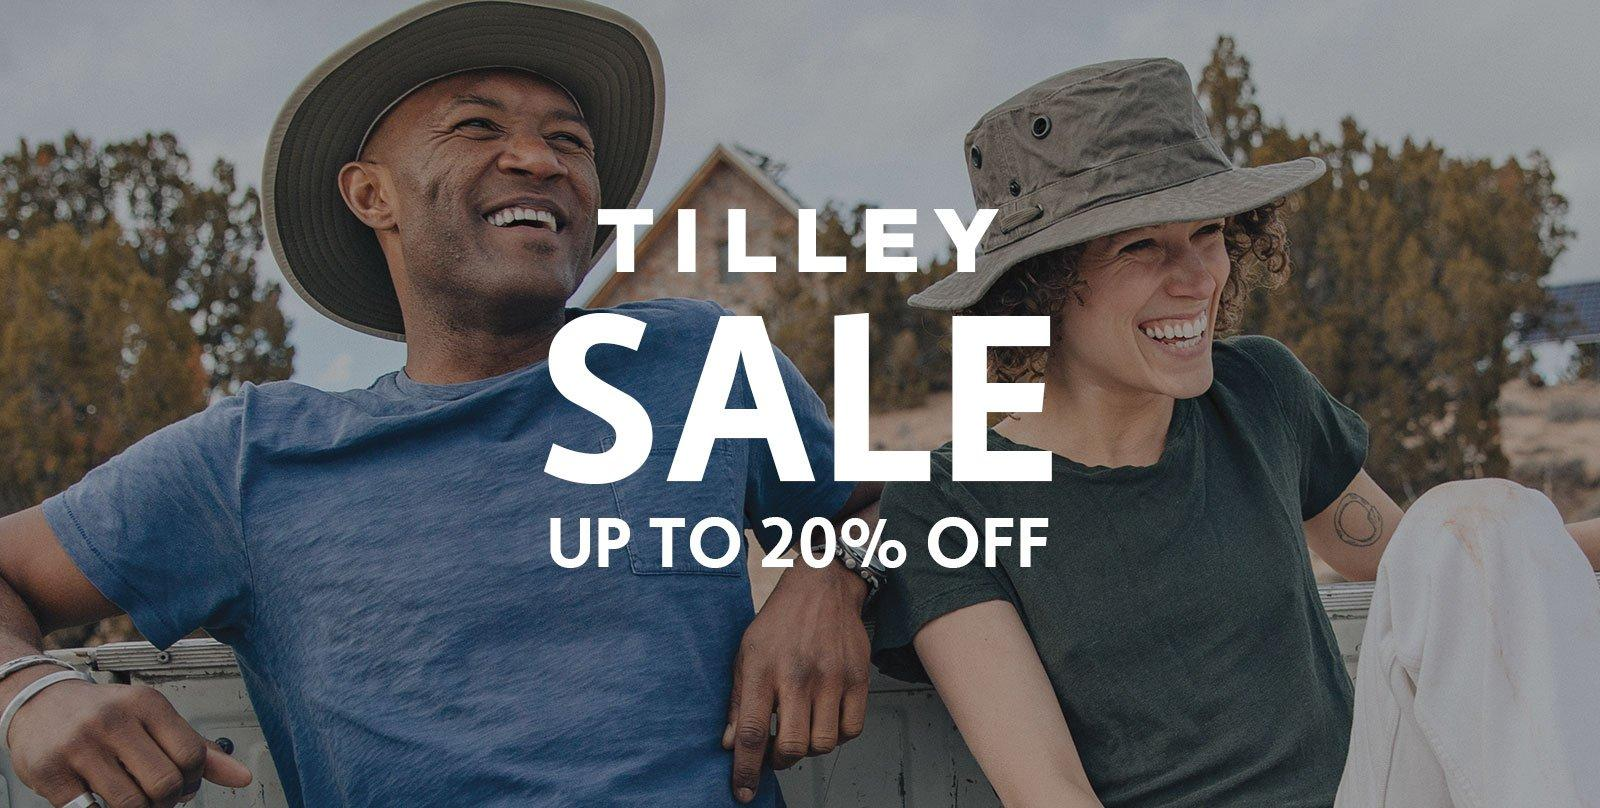 Up to 20% Off TILLY